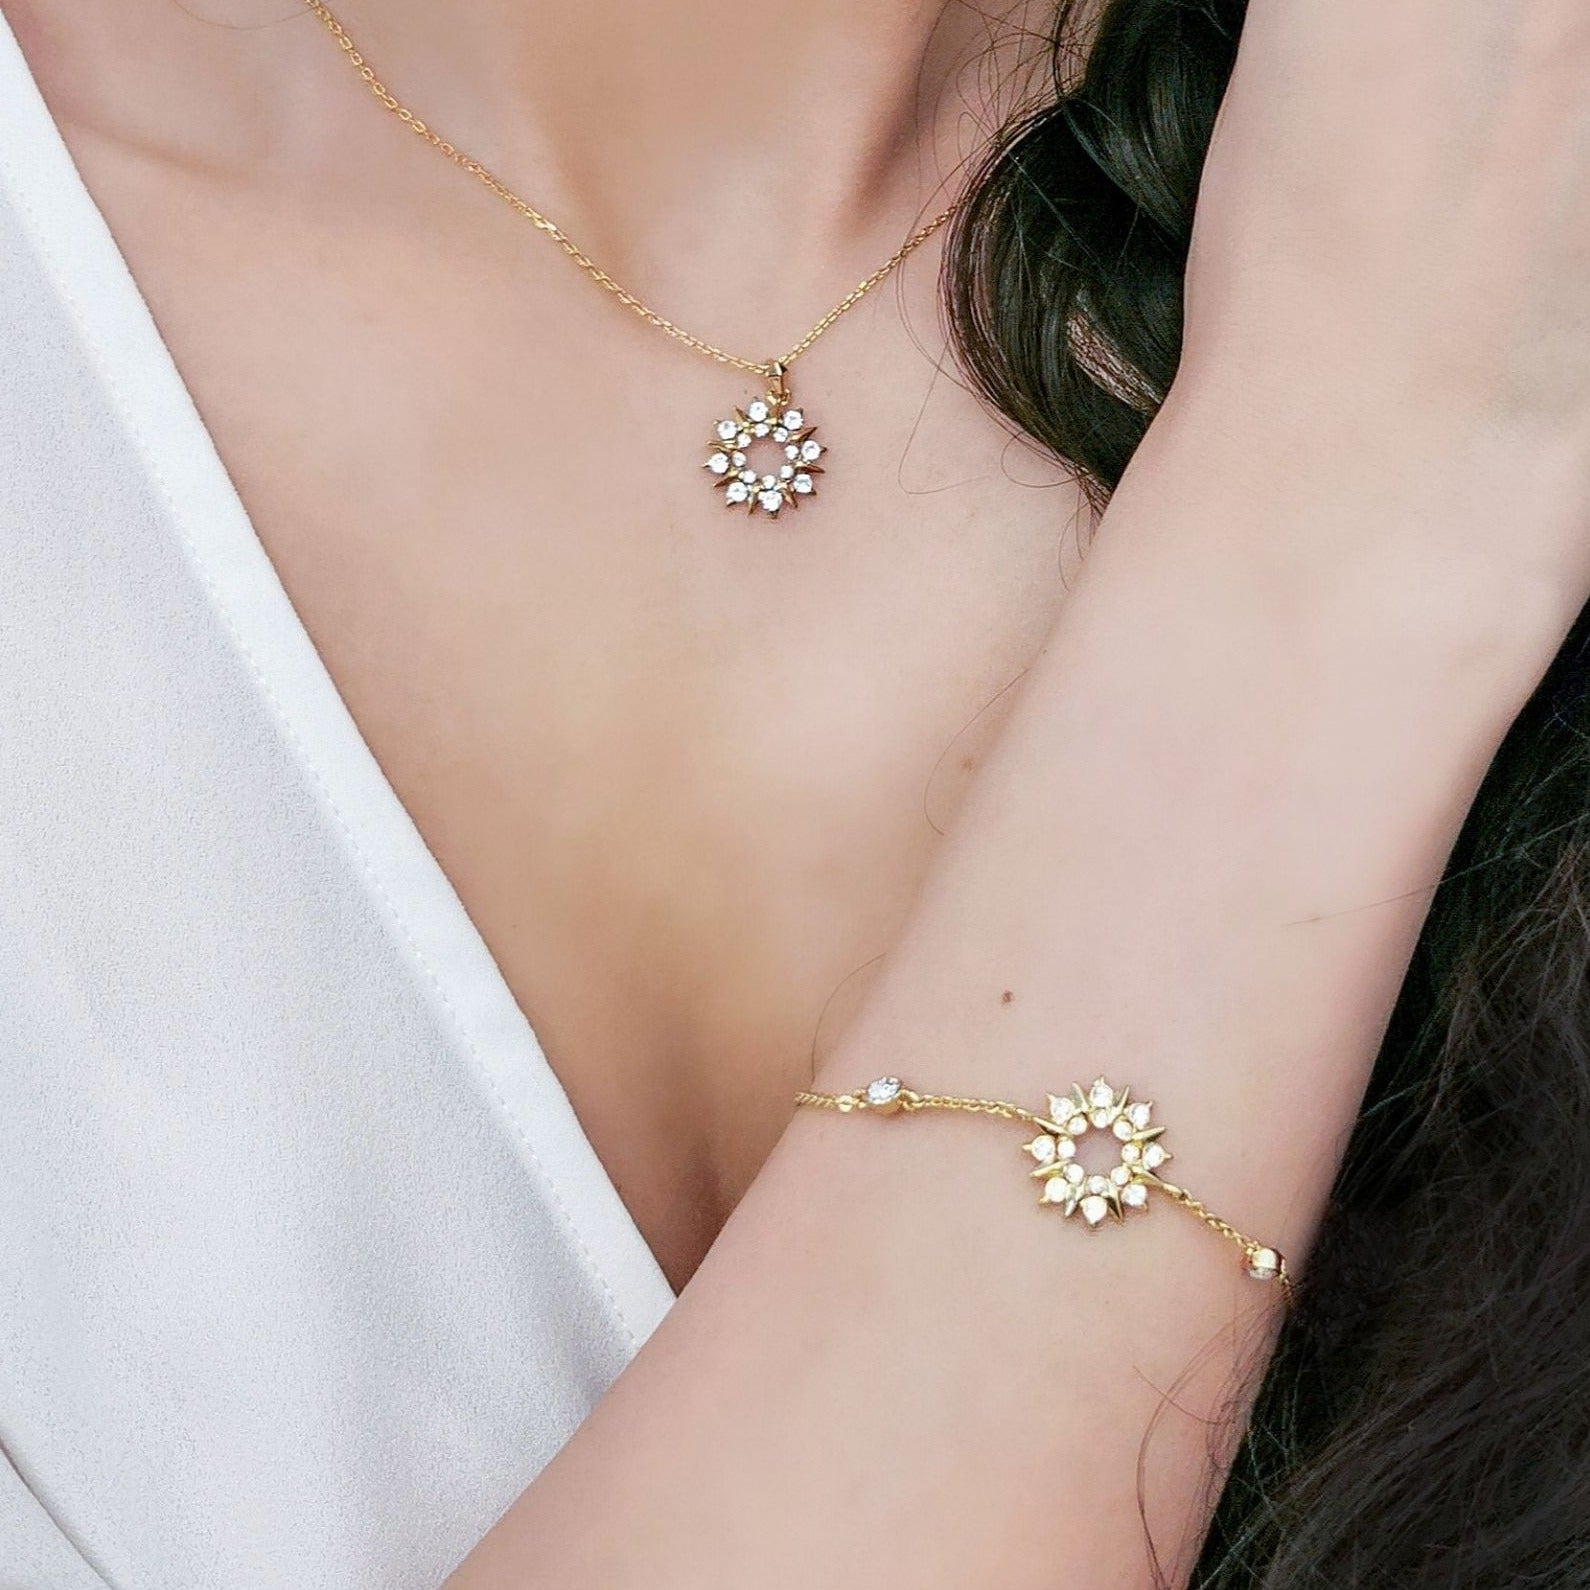 Sunray Bracelet (Clear Diamond, 18K Gold Plated) - Lush Addiction, Crystals from Swarovski